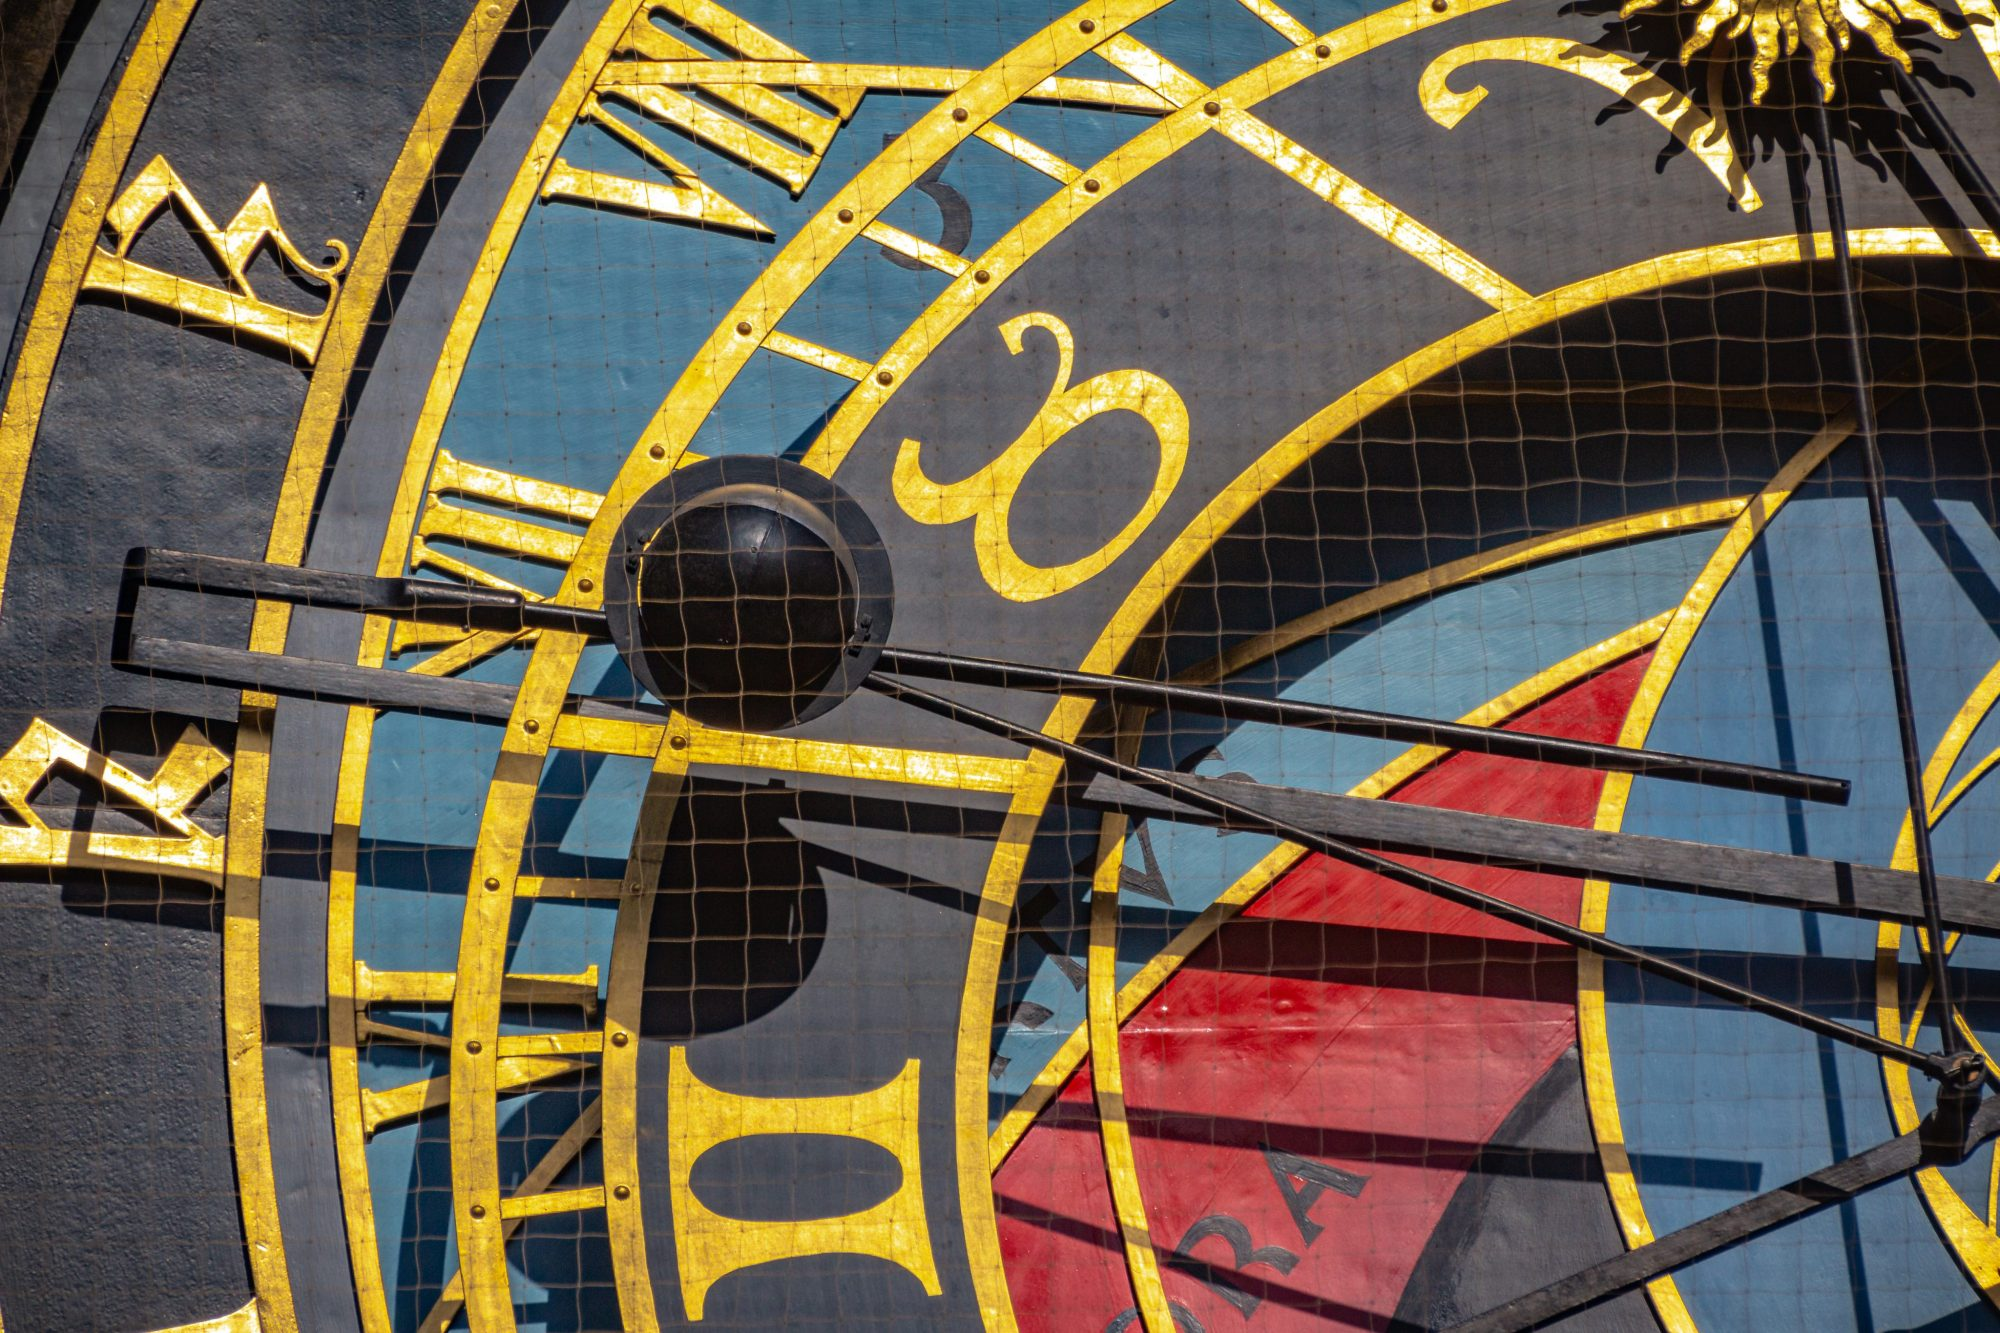 Photo of the Astronomical Clock with a detail of the Moonball